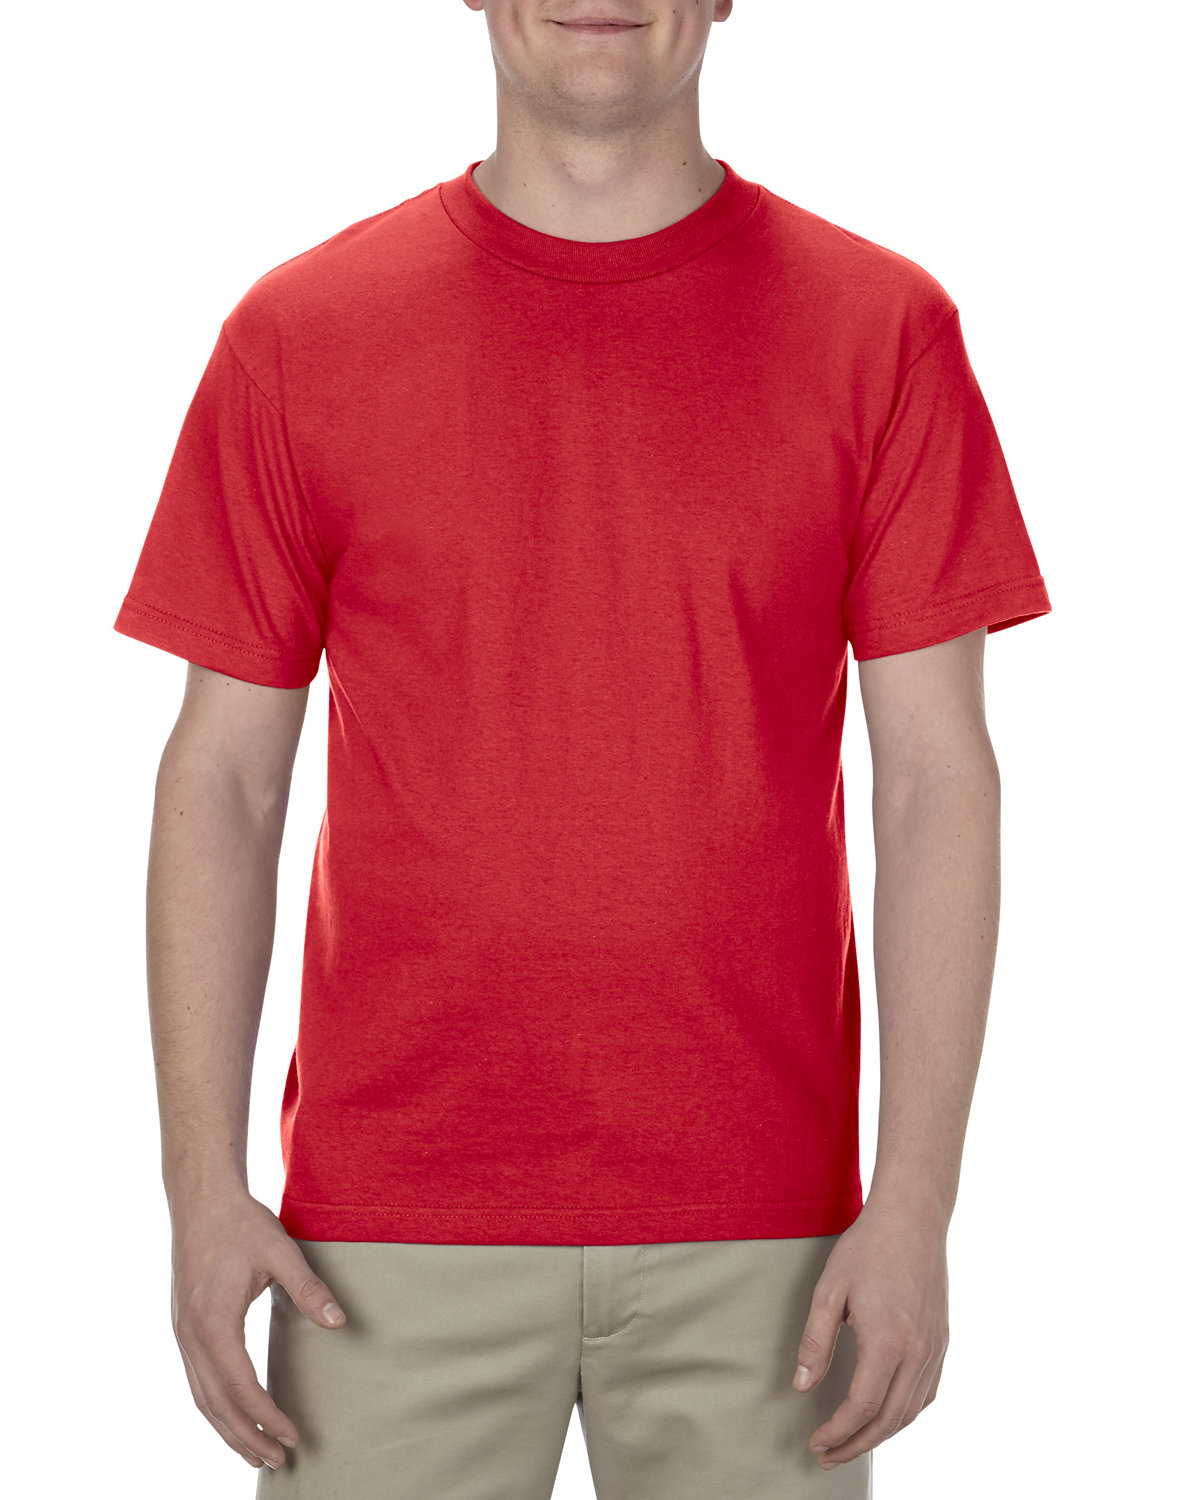 Alstyle Adult 6.0 oz., 100% Cotton T-Shirt RED